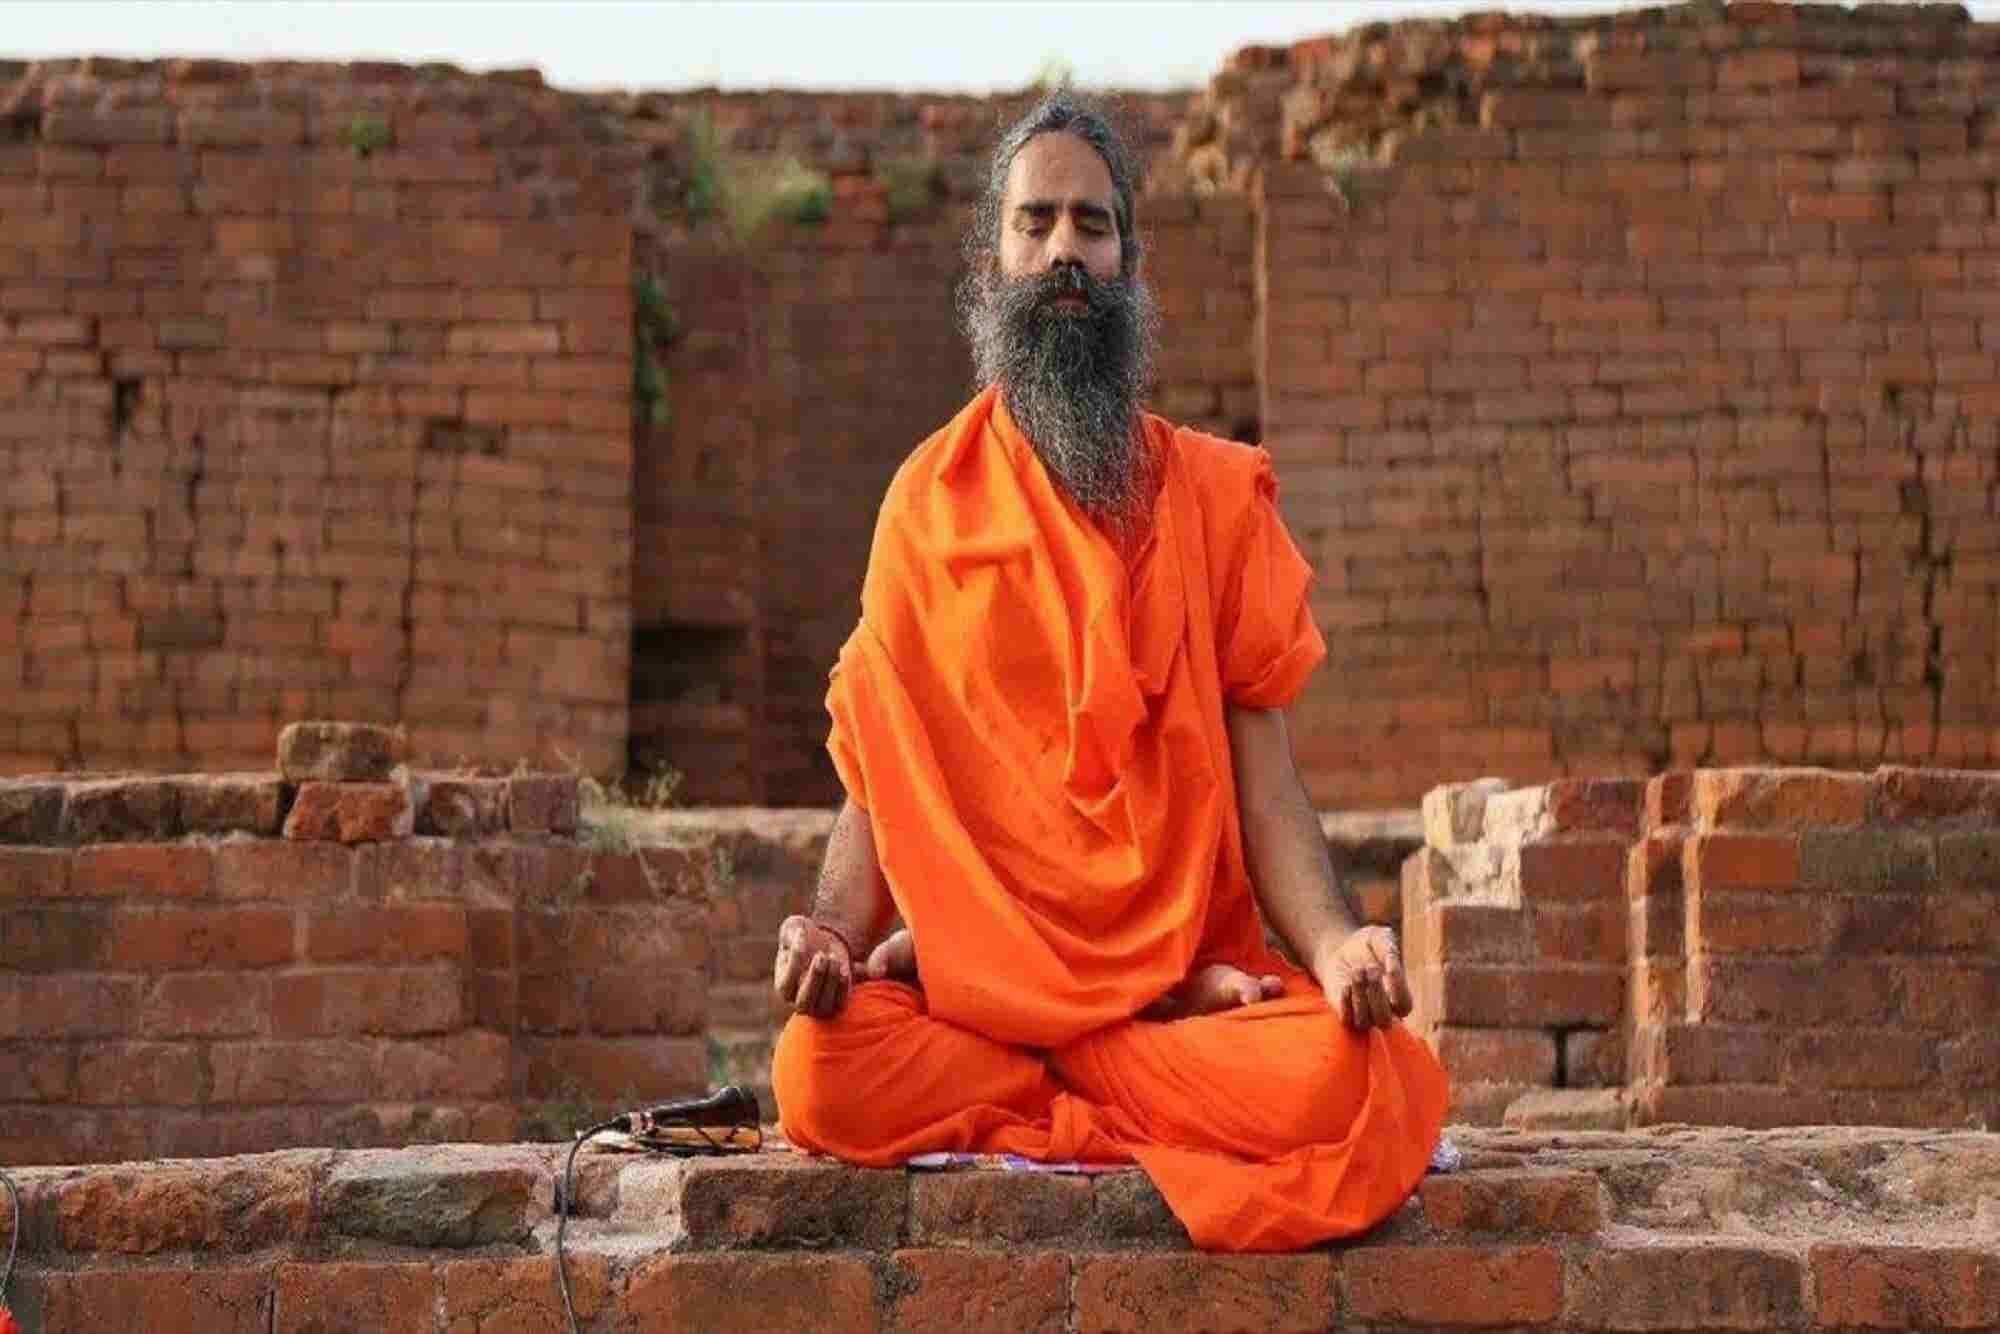 Baba Ramdev has a New Move and Jeff Bezos Aims for the Moon. 4 Things...